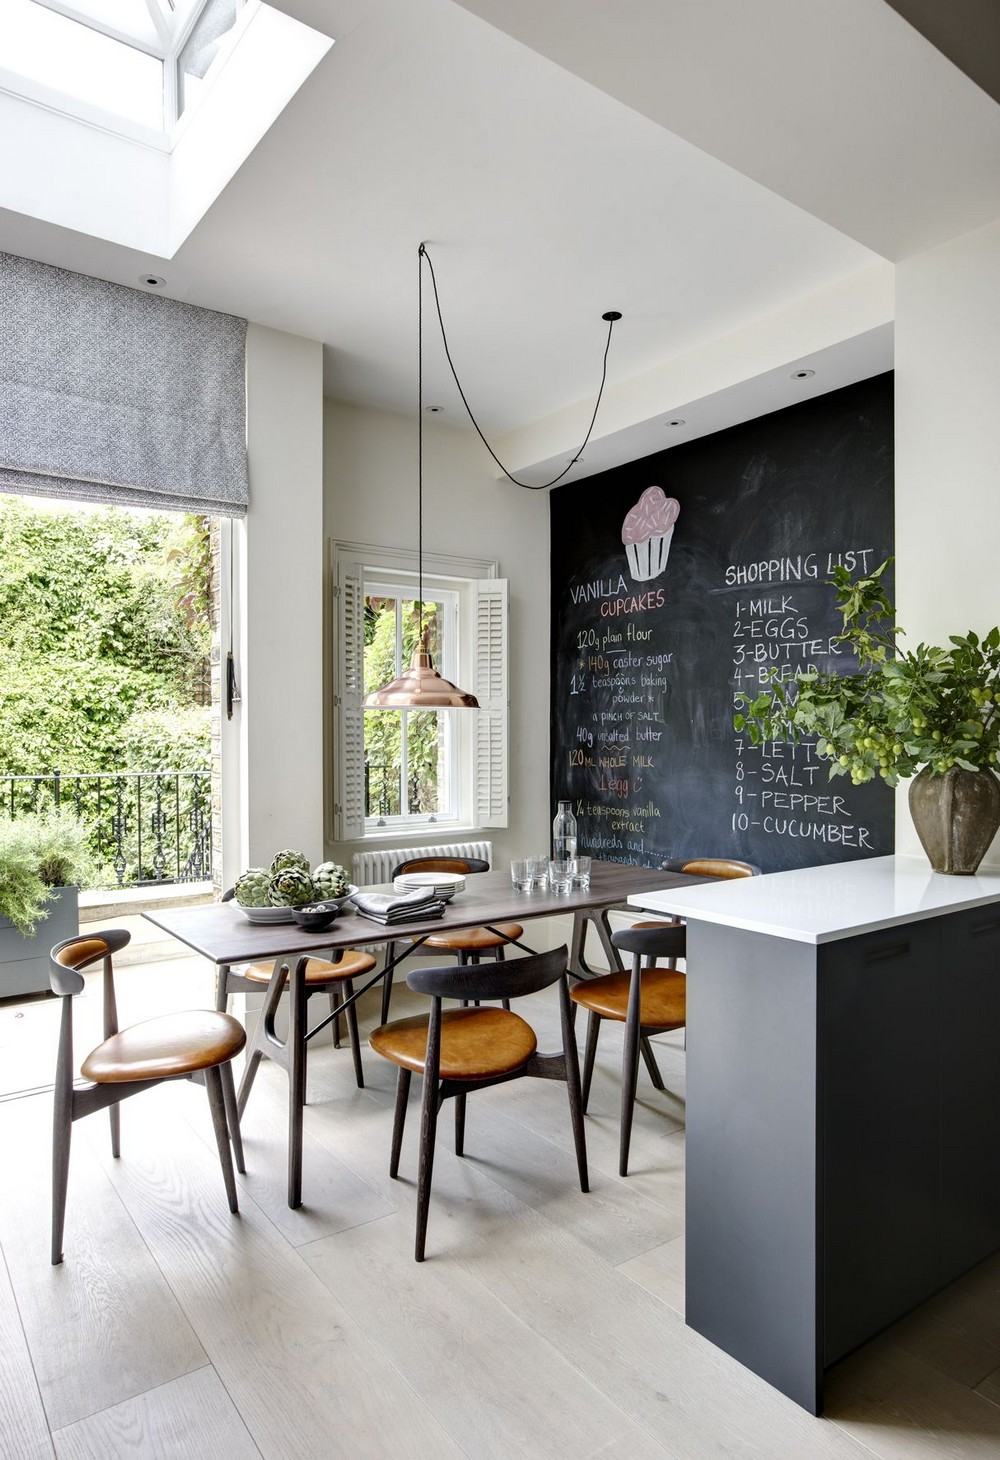 Helen Green Design: Dining Rooms You Will Covet helen green design Helen Green Design: Dining Rooms You Will Covet 4 pinterest